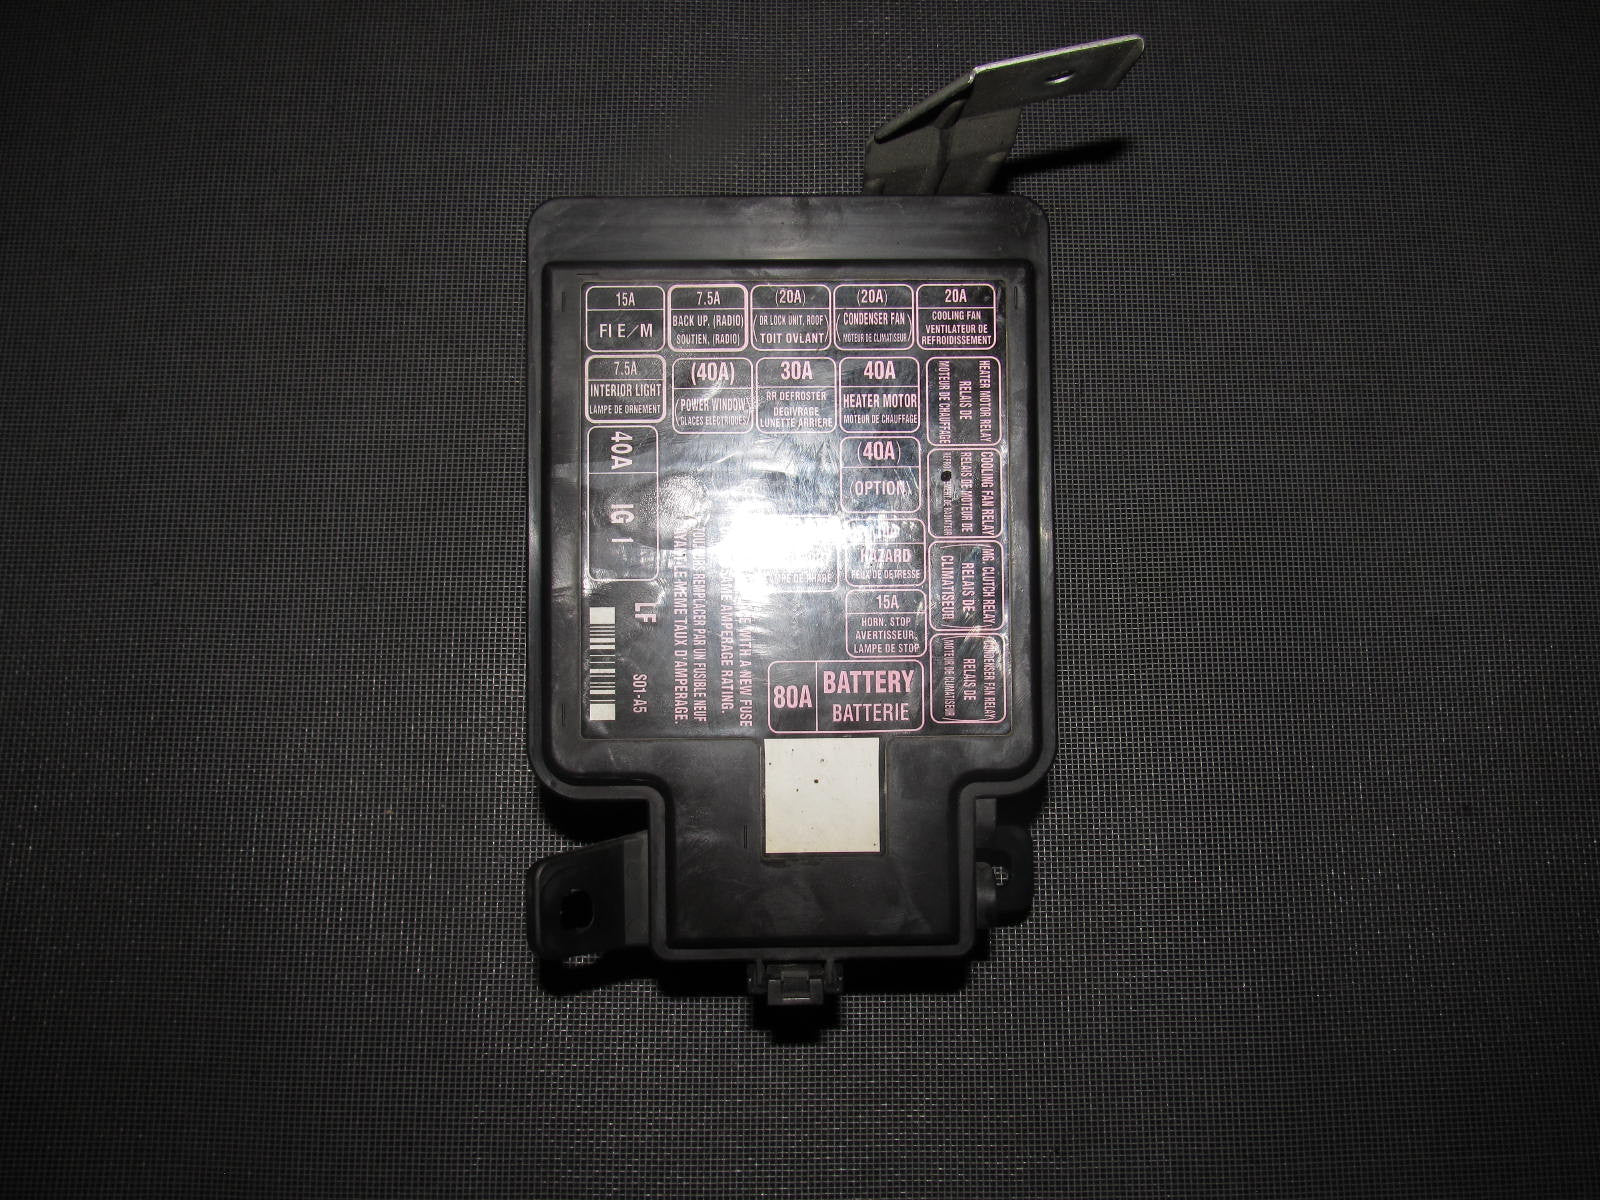 2007 honda civic fuse box diagram 96 97 98 99 00 honda civic oem engine fuse box ...